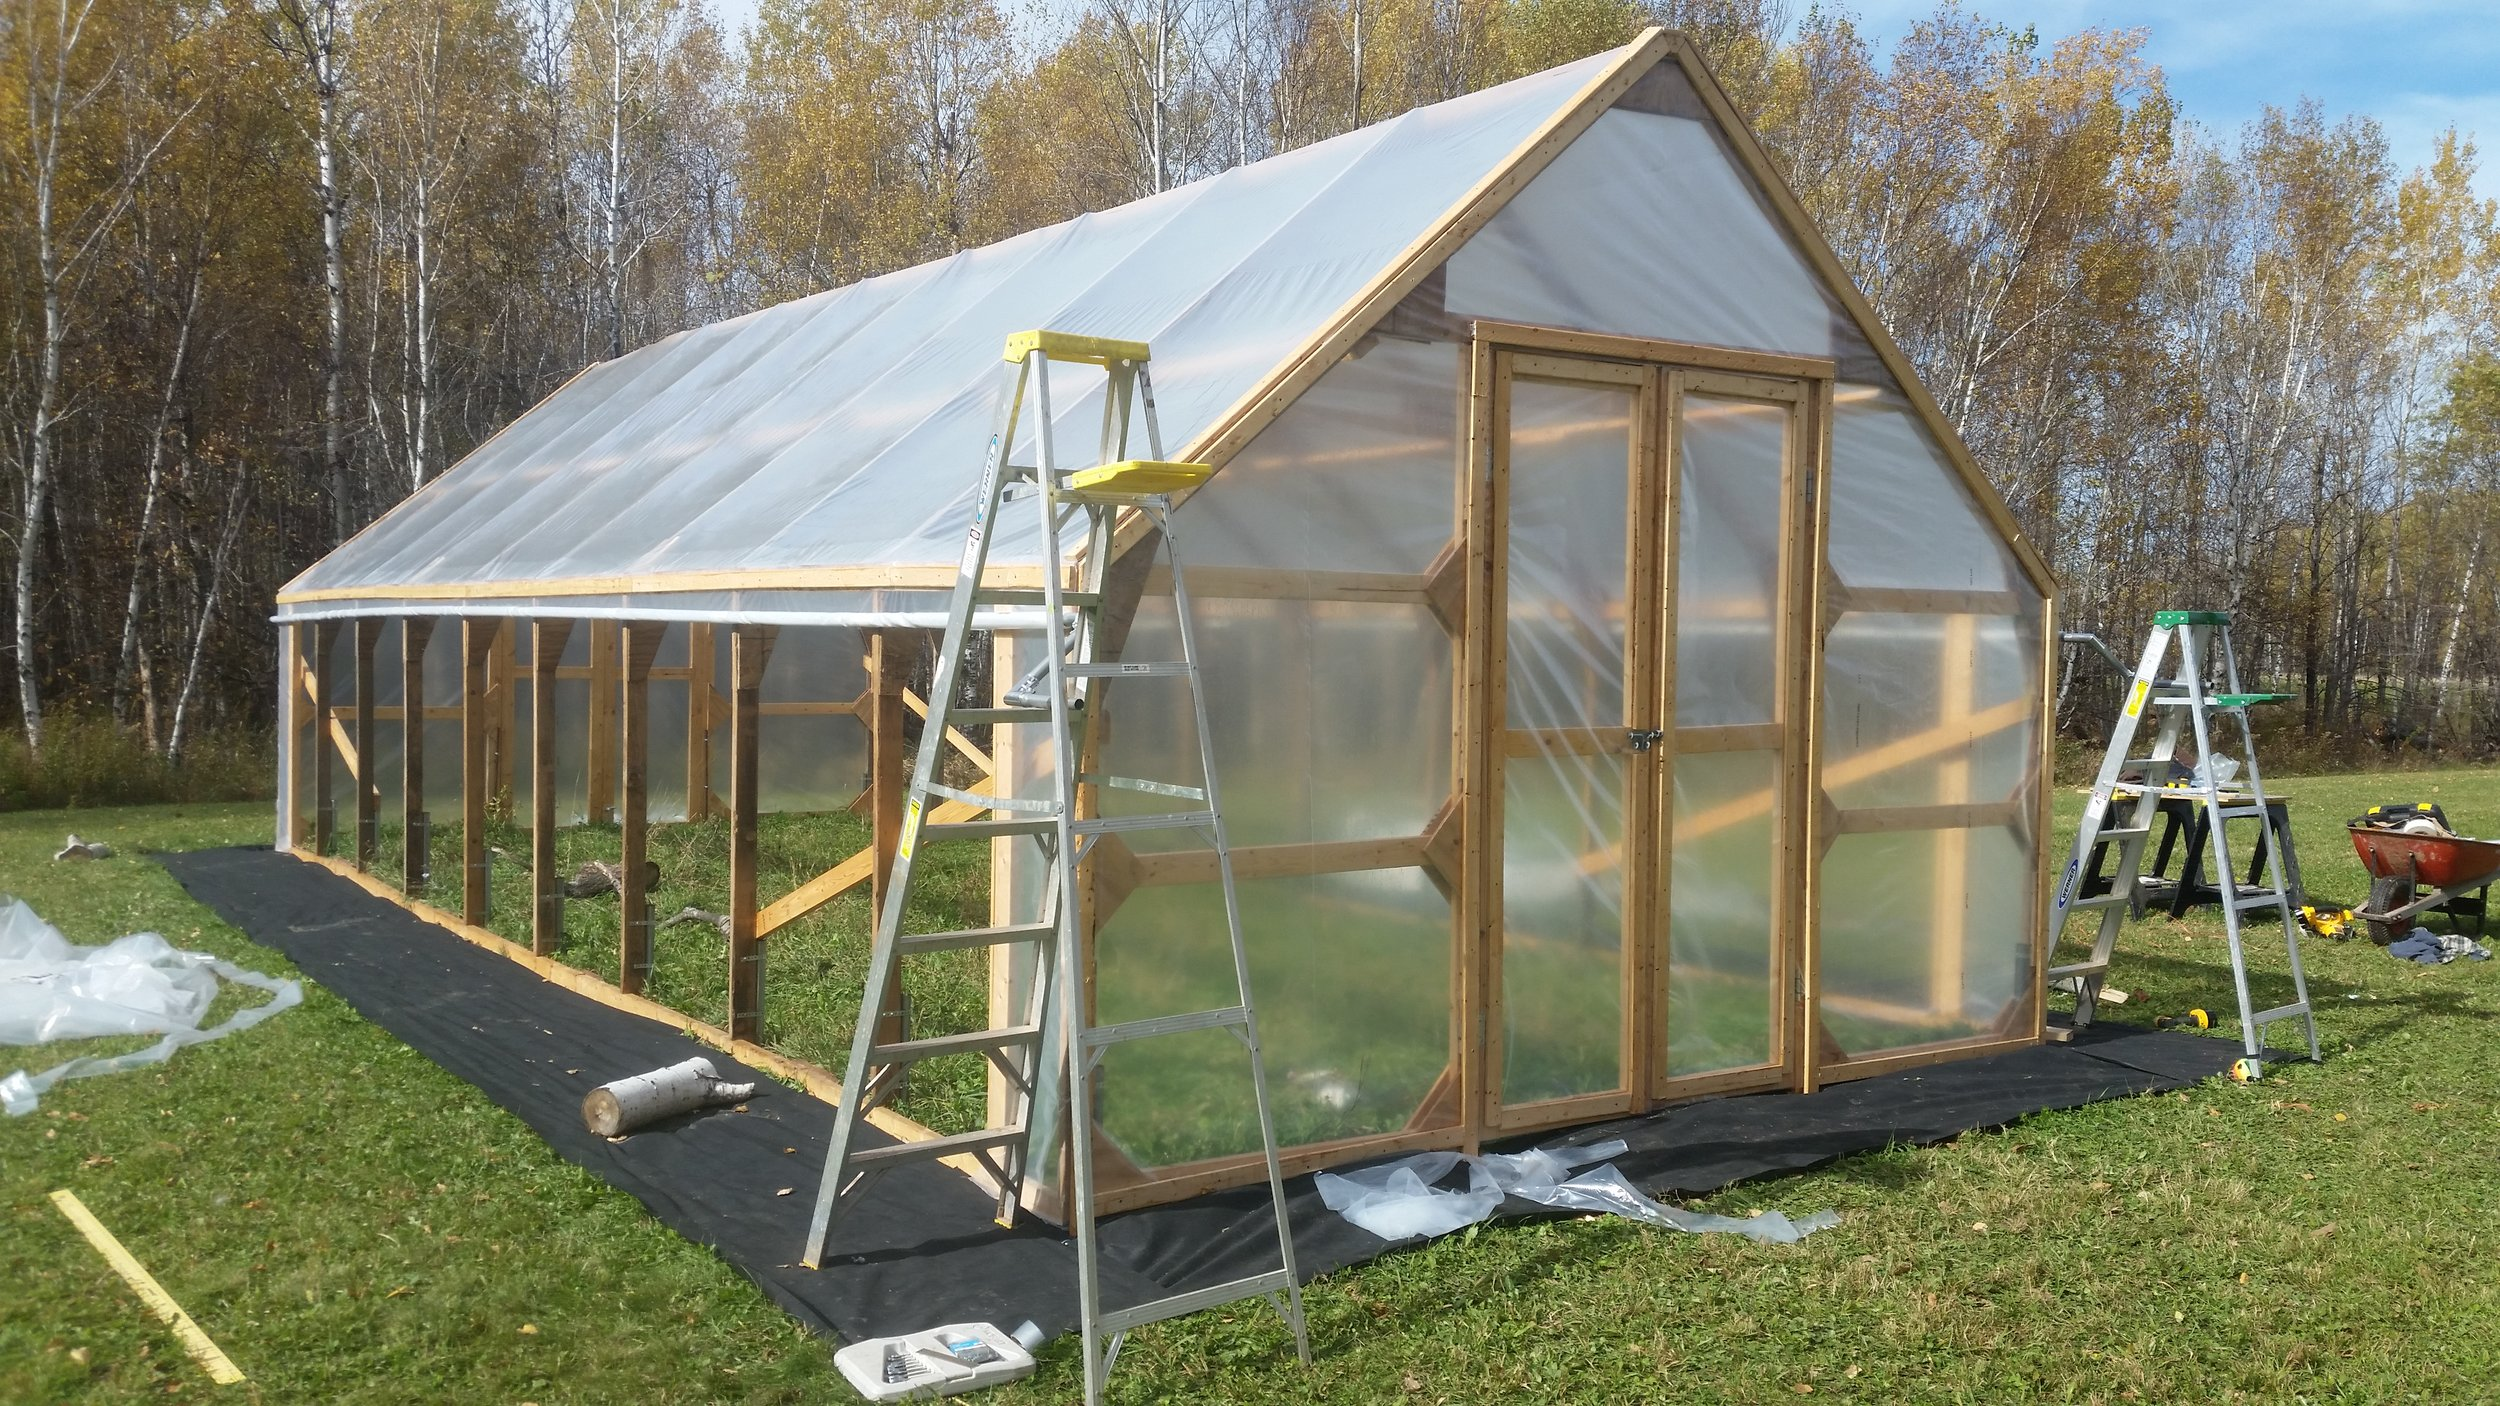 Putting the finishing touches on the hoophouse